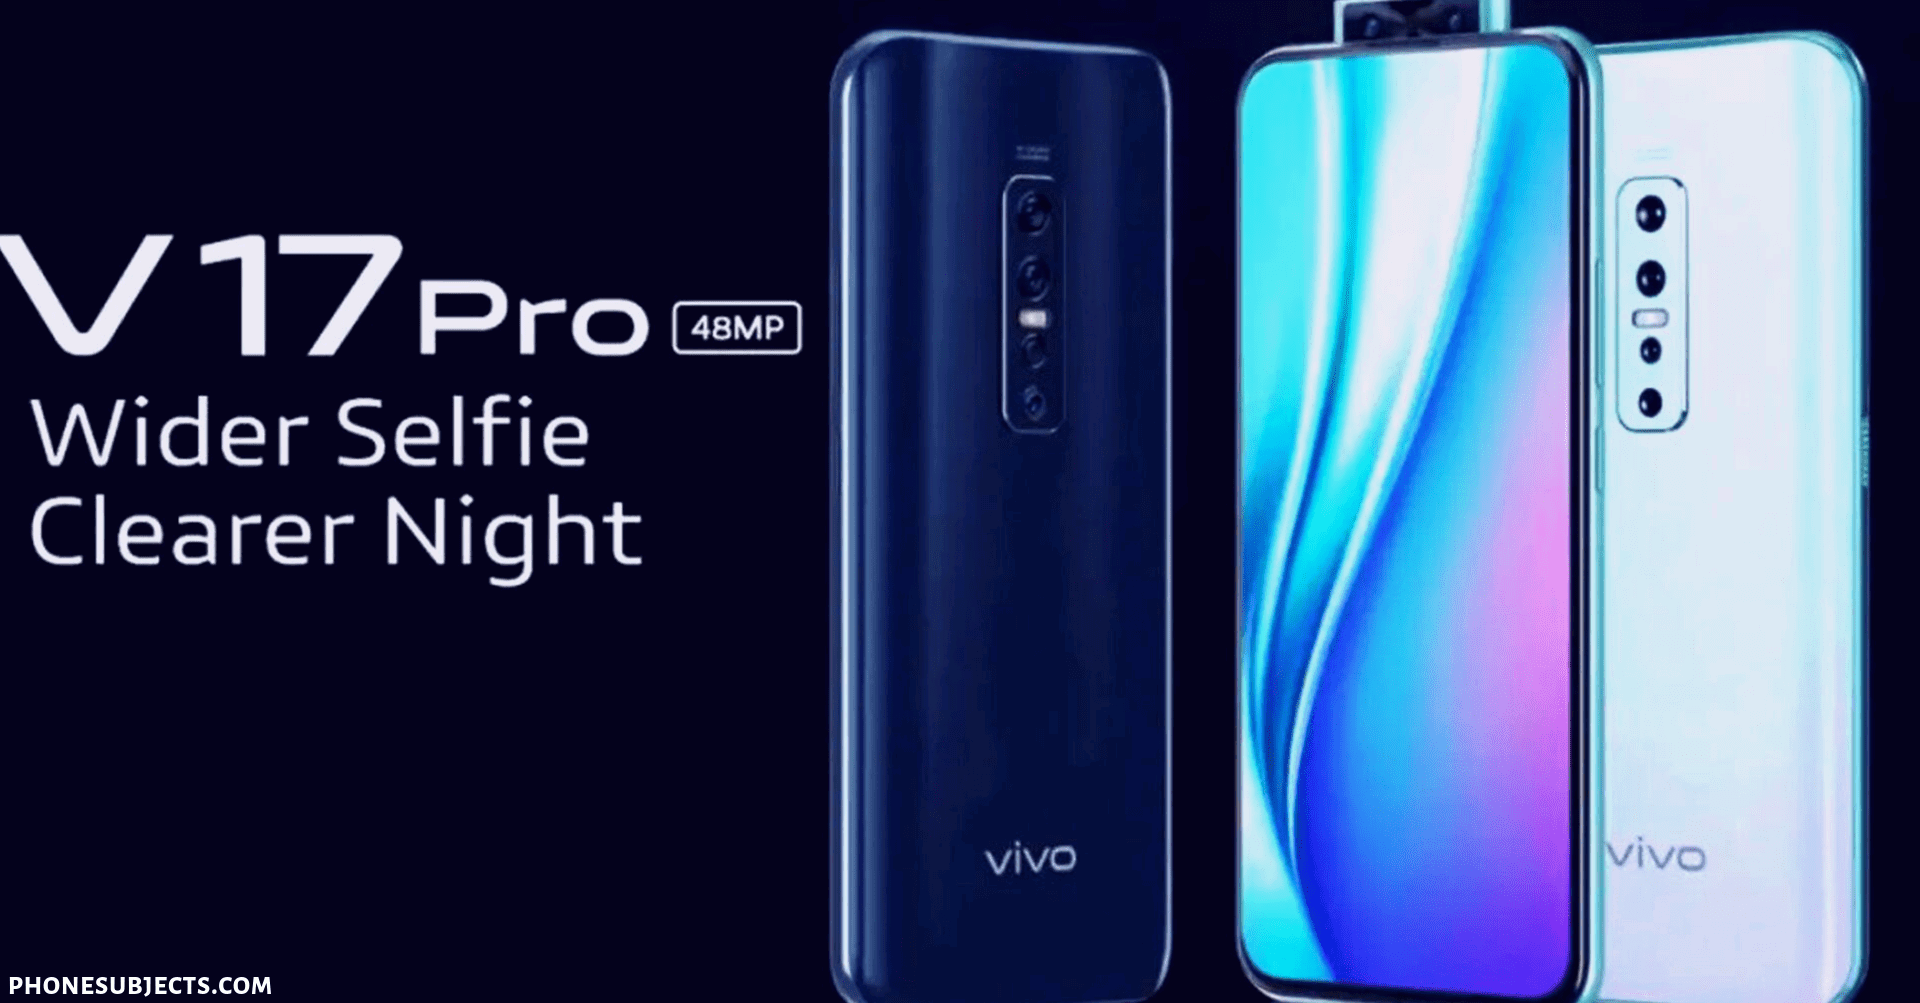 Vivo V17 Pro Full Price | Review | Features | Specifications in India 2019 #touchscreendisplay Friends, Vivo v17 Pro was launched on 20 September 2019. This phone has a 6.44-inch touch screen display. And the resolution of this phone is 1080 x 2400 pixels.  The Vivo v17 Pro is powered by a 2GHz octa-core Qualcomm Snapdragon 675 processor. Vivo V17 Pro comes with 8GB of RAM. #touchscreendisplay Vivo V17 Pro Full Price | Review | Features | Specifications in India 2019 #touchscreendisplay Friends, #touchscreendisplay